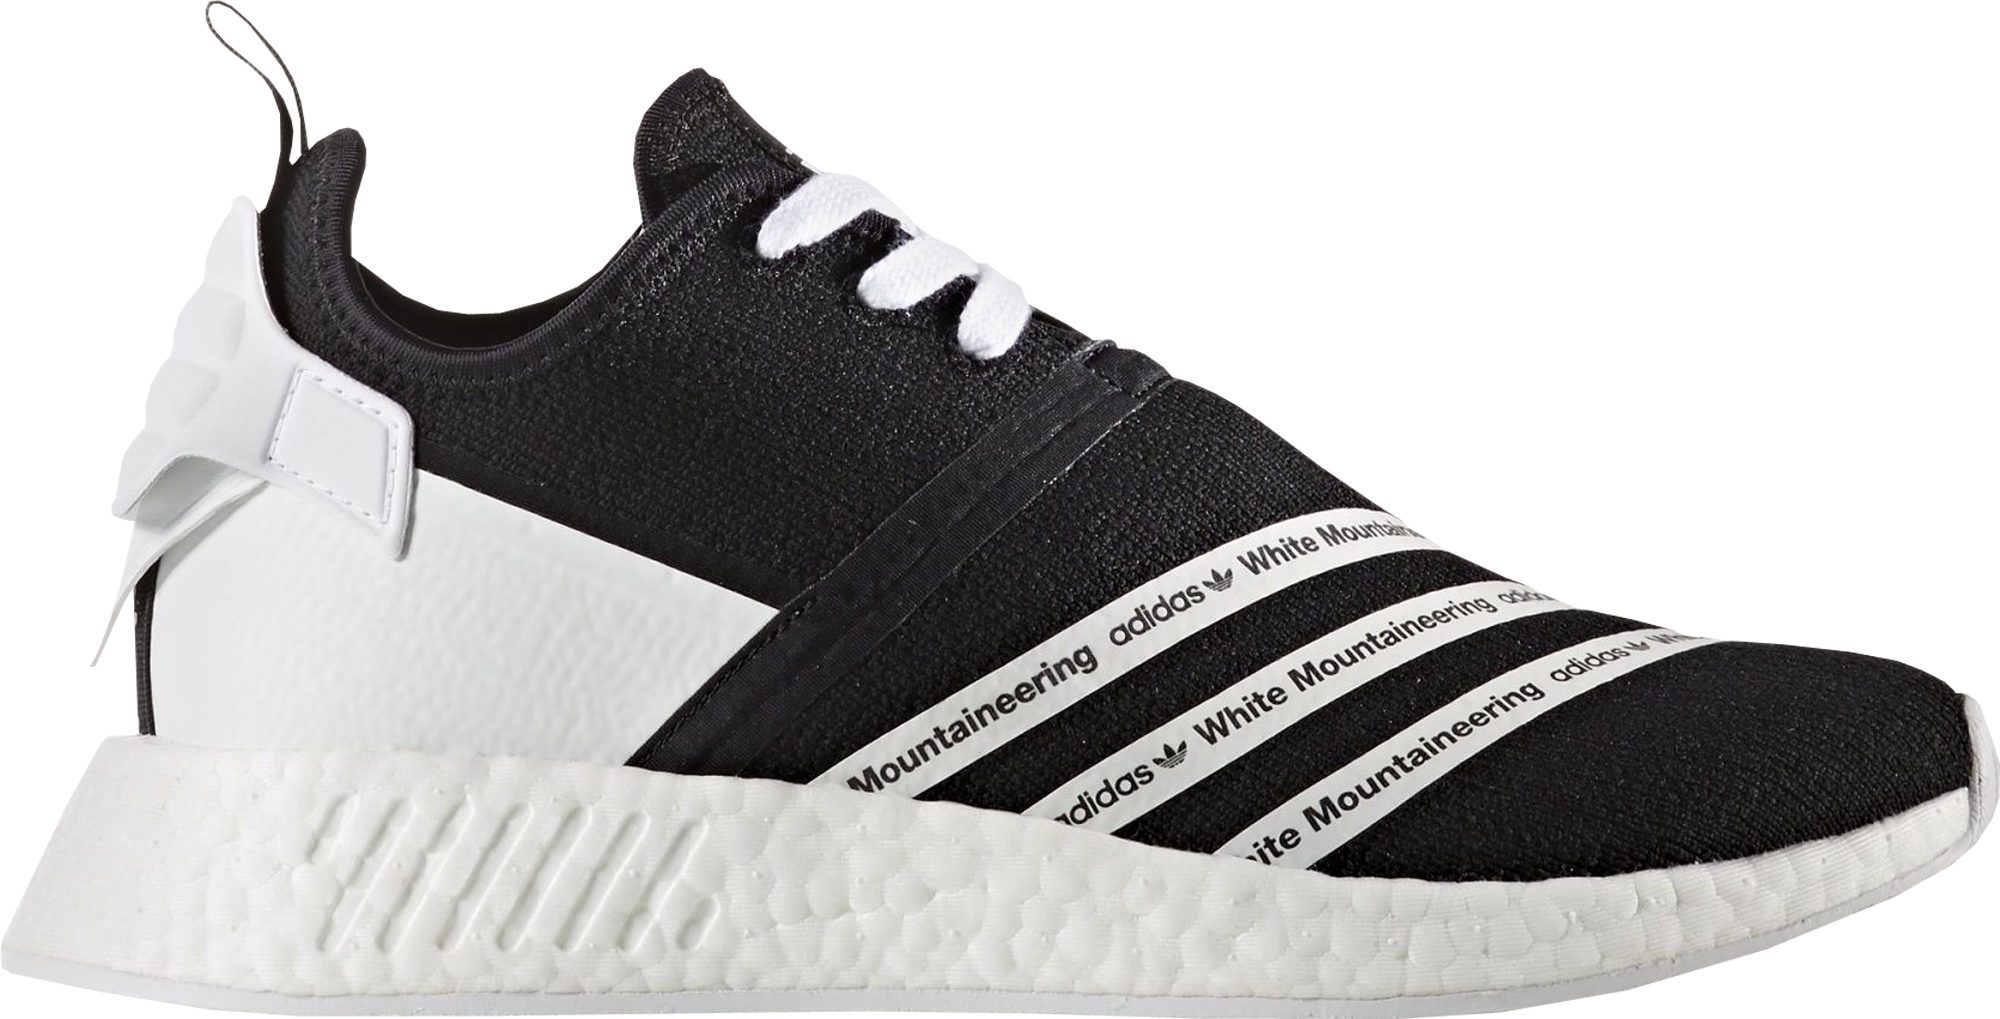 adidas NMD R2 White Mountaineering Black White